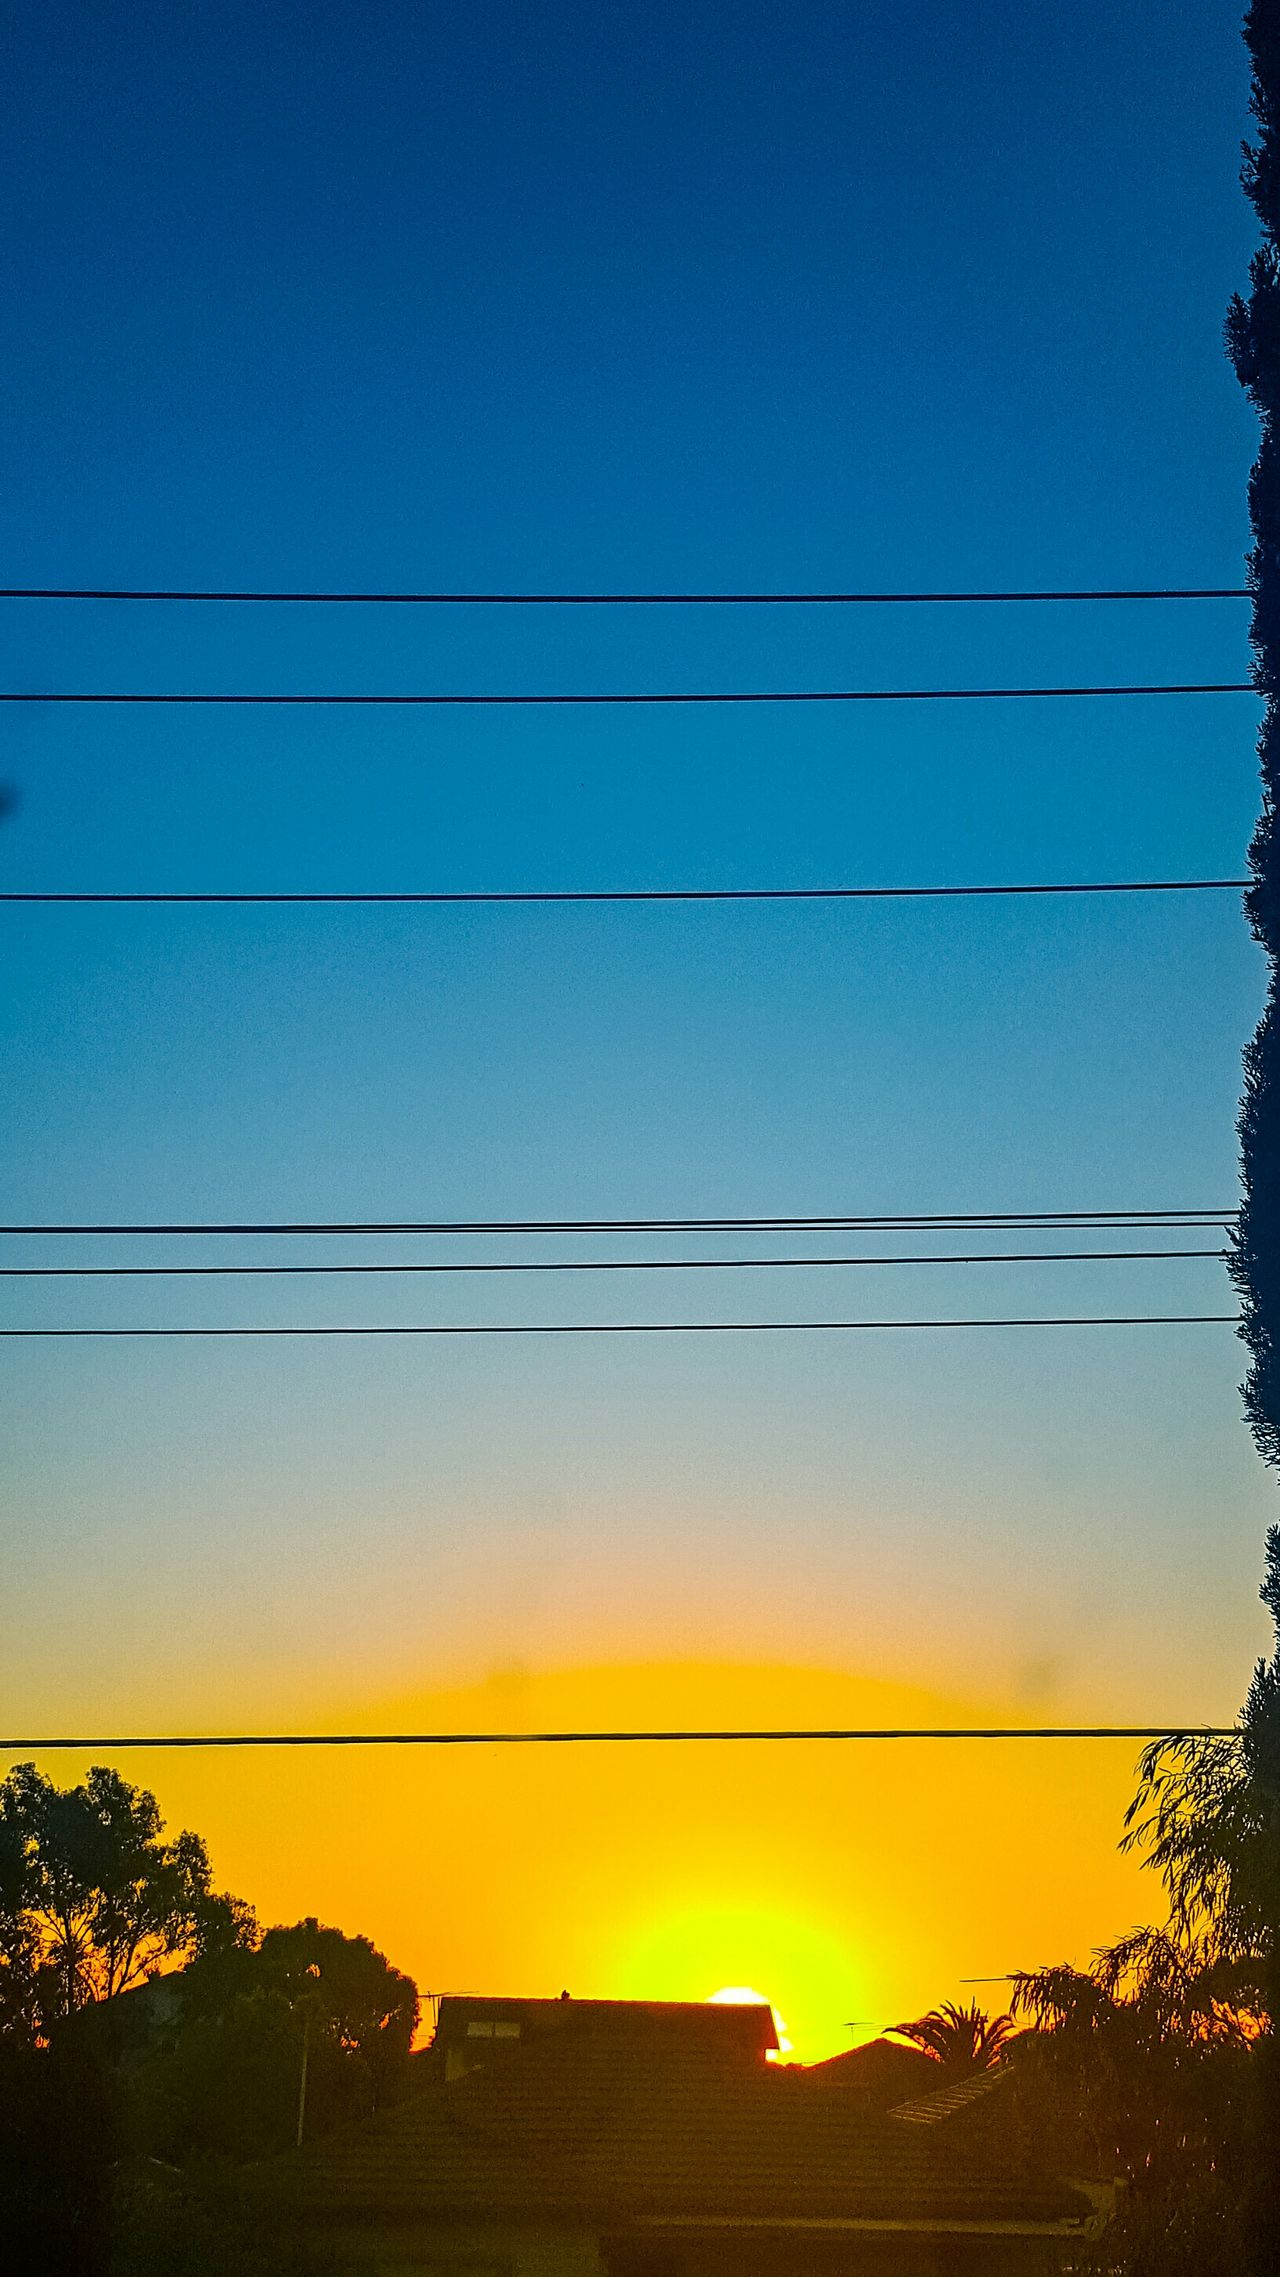 Sunsets with no clouds look so beautiful 😍😍 Tree Transportation Blue Cable Power Line  Land Vehicle Clear Sky Yellow Scenics Tranquil Scene Outdoors Sky Nature Tranquility No People Power Supply TakeoverContrast Capture The Moment Sunset Silhouettes Sunset EyeEm Best Shots Beauty In Nature Check This Out Majestic Snapshots Of Life